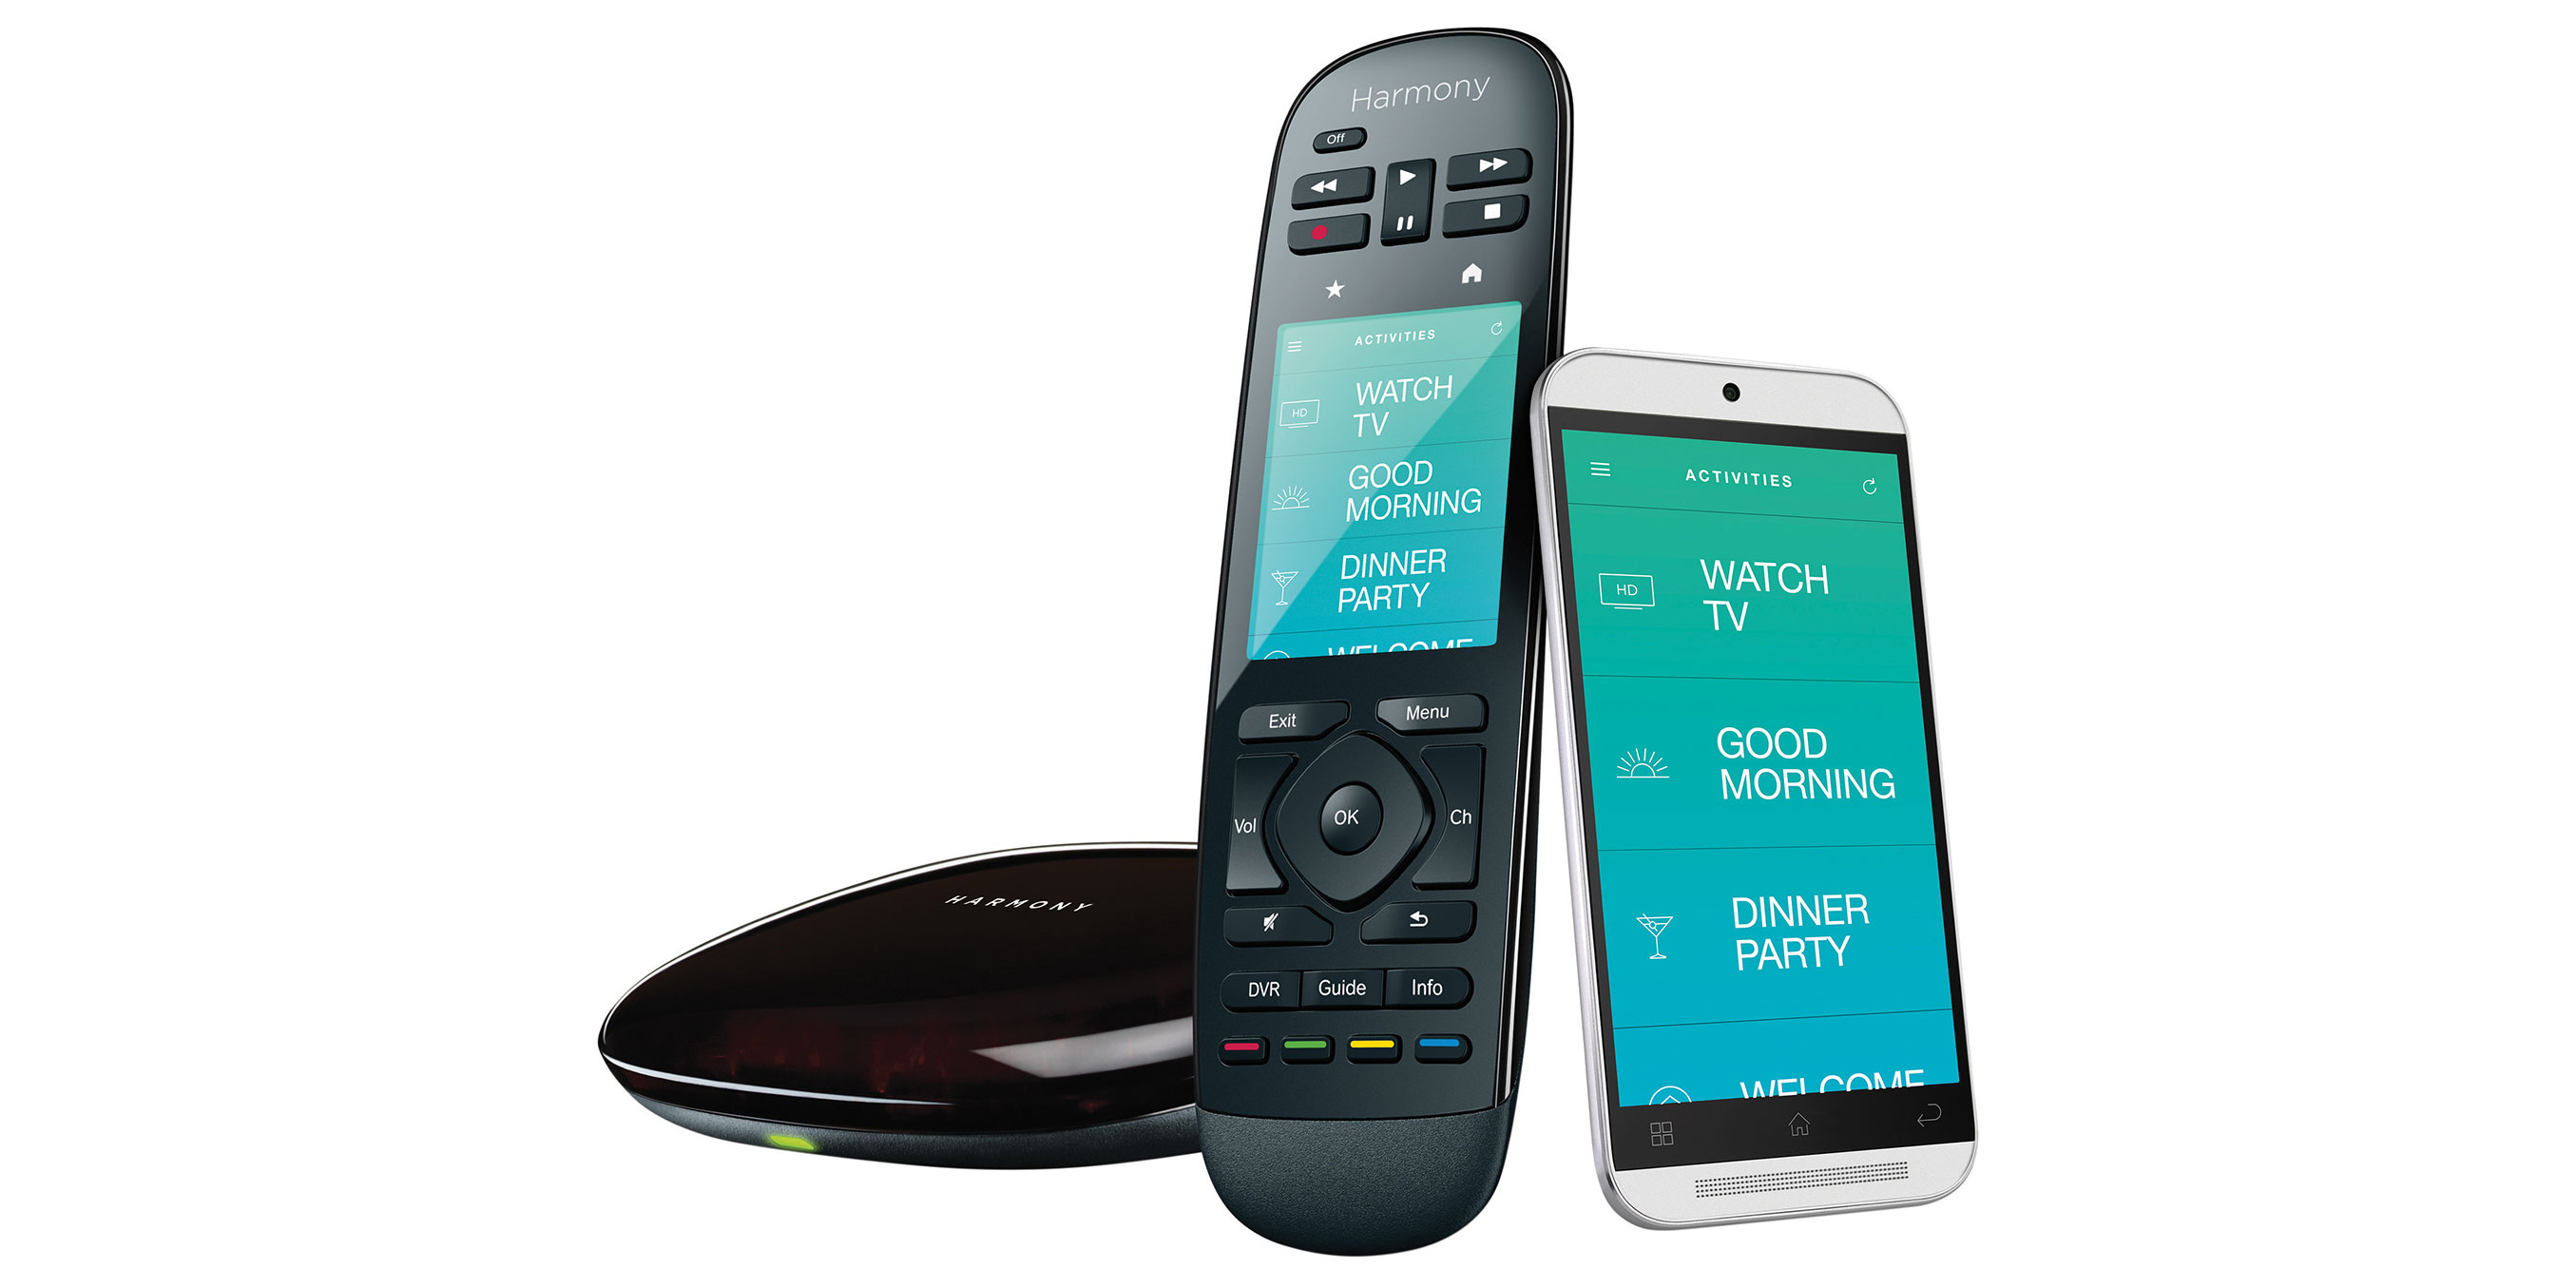 Pick up Logitech's Harmony Ultimate Home Remote for $120 shipped (Reg. $150)